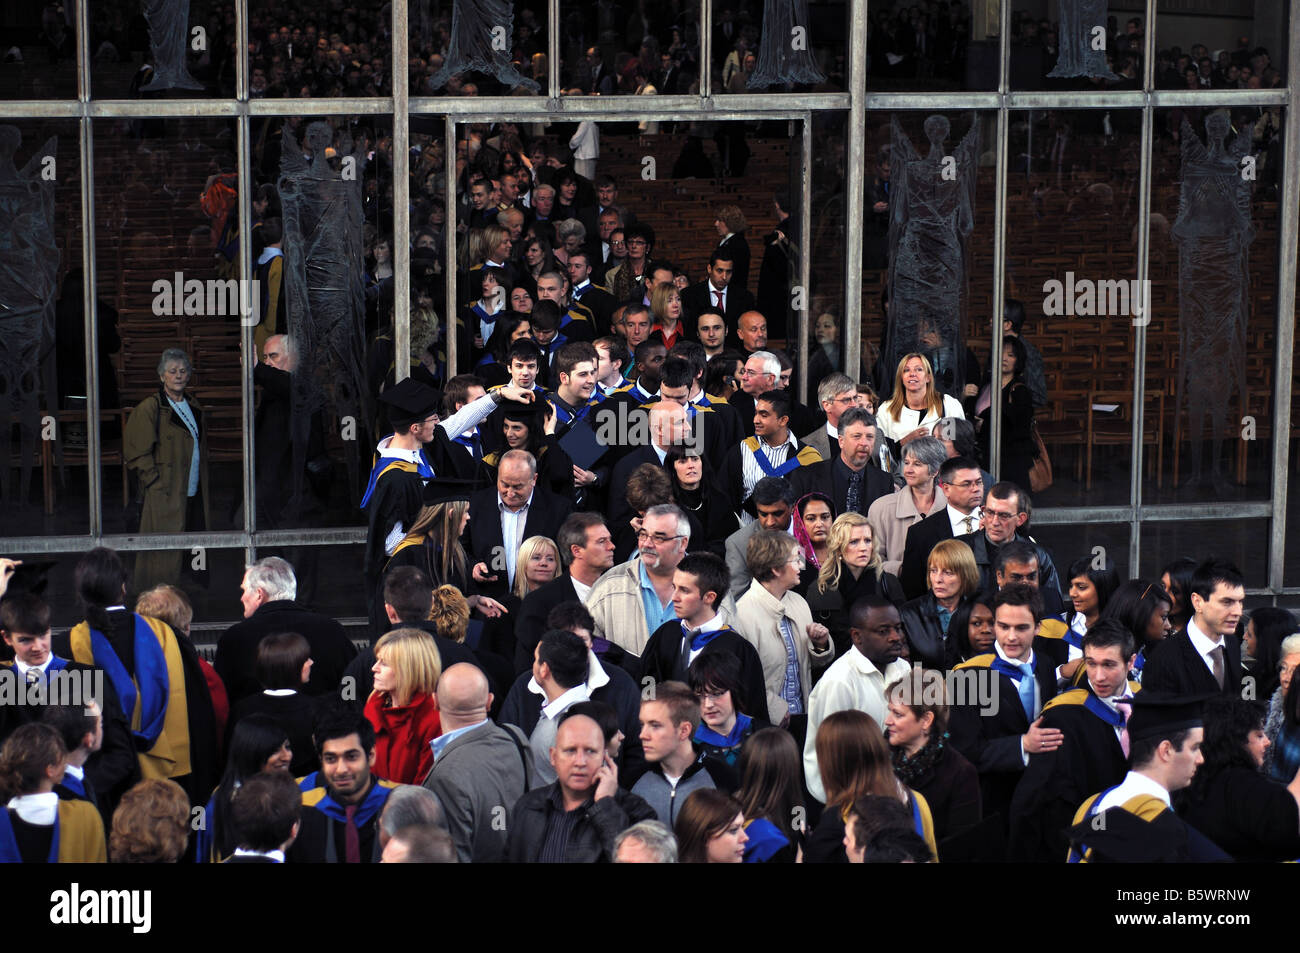 People leaving Coventry Cathedral after Coventry University graduation ceremony, West Midlands, England, UK - Stock Image